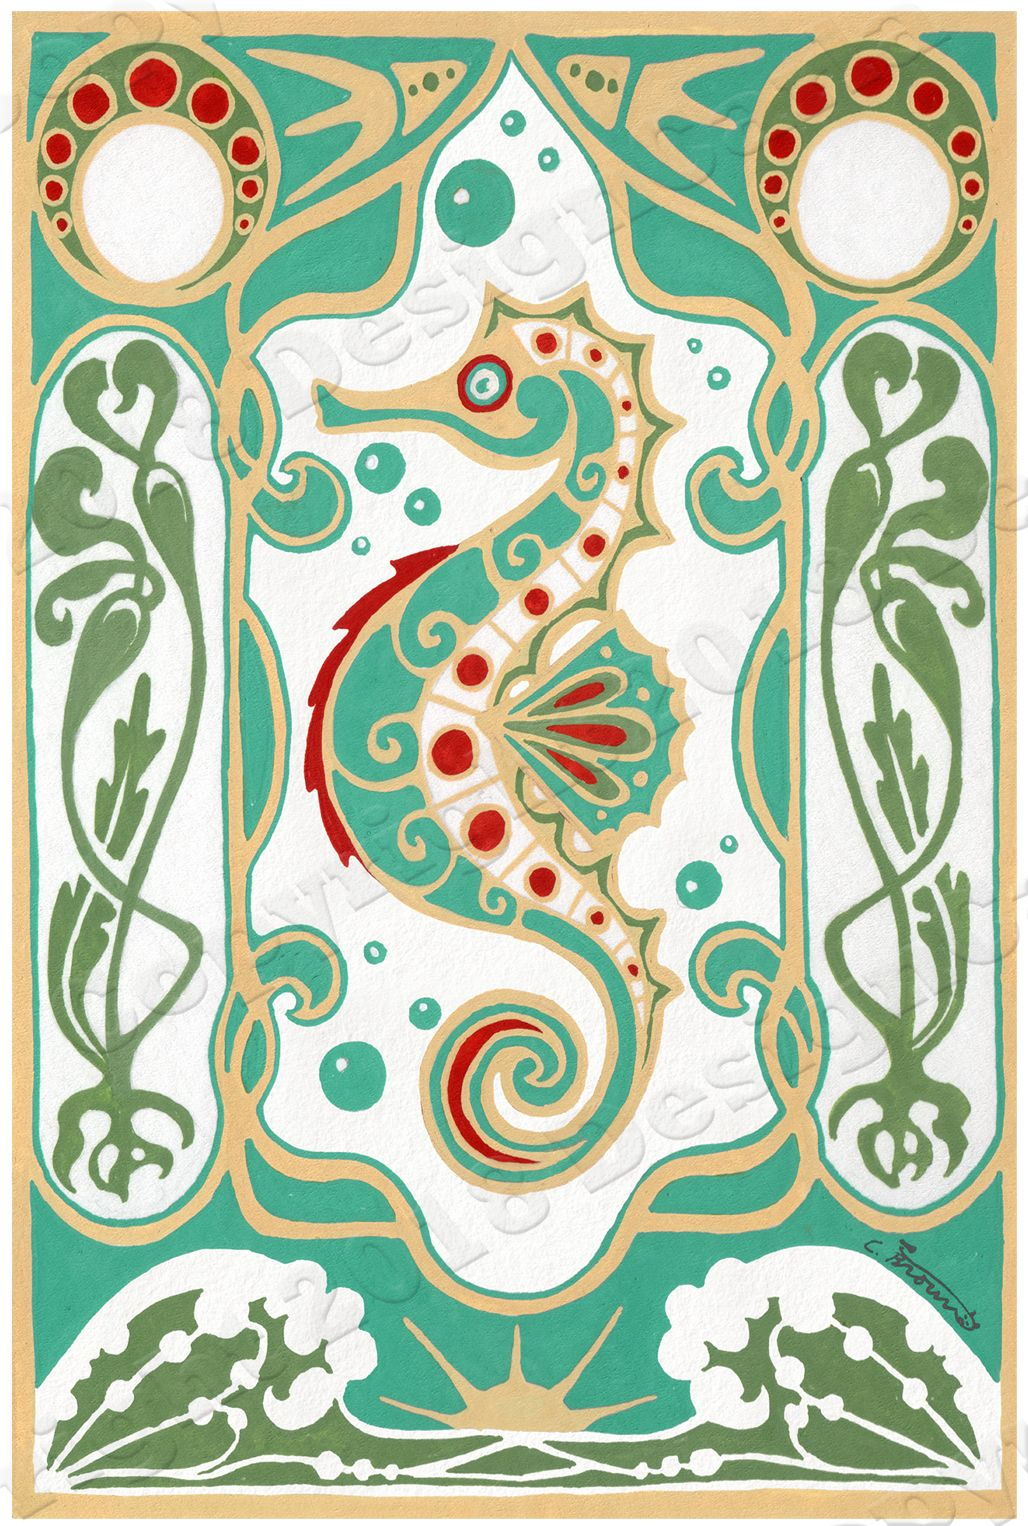 Seahorse Poster Art Nouveau Fine Print Turquoise and Gold.